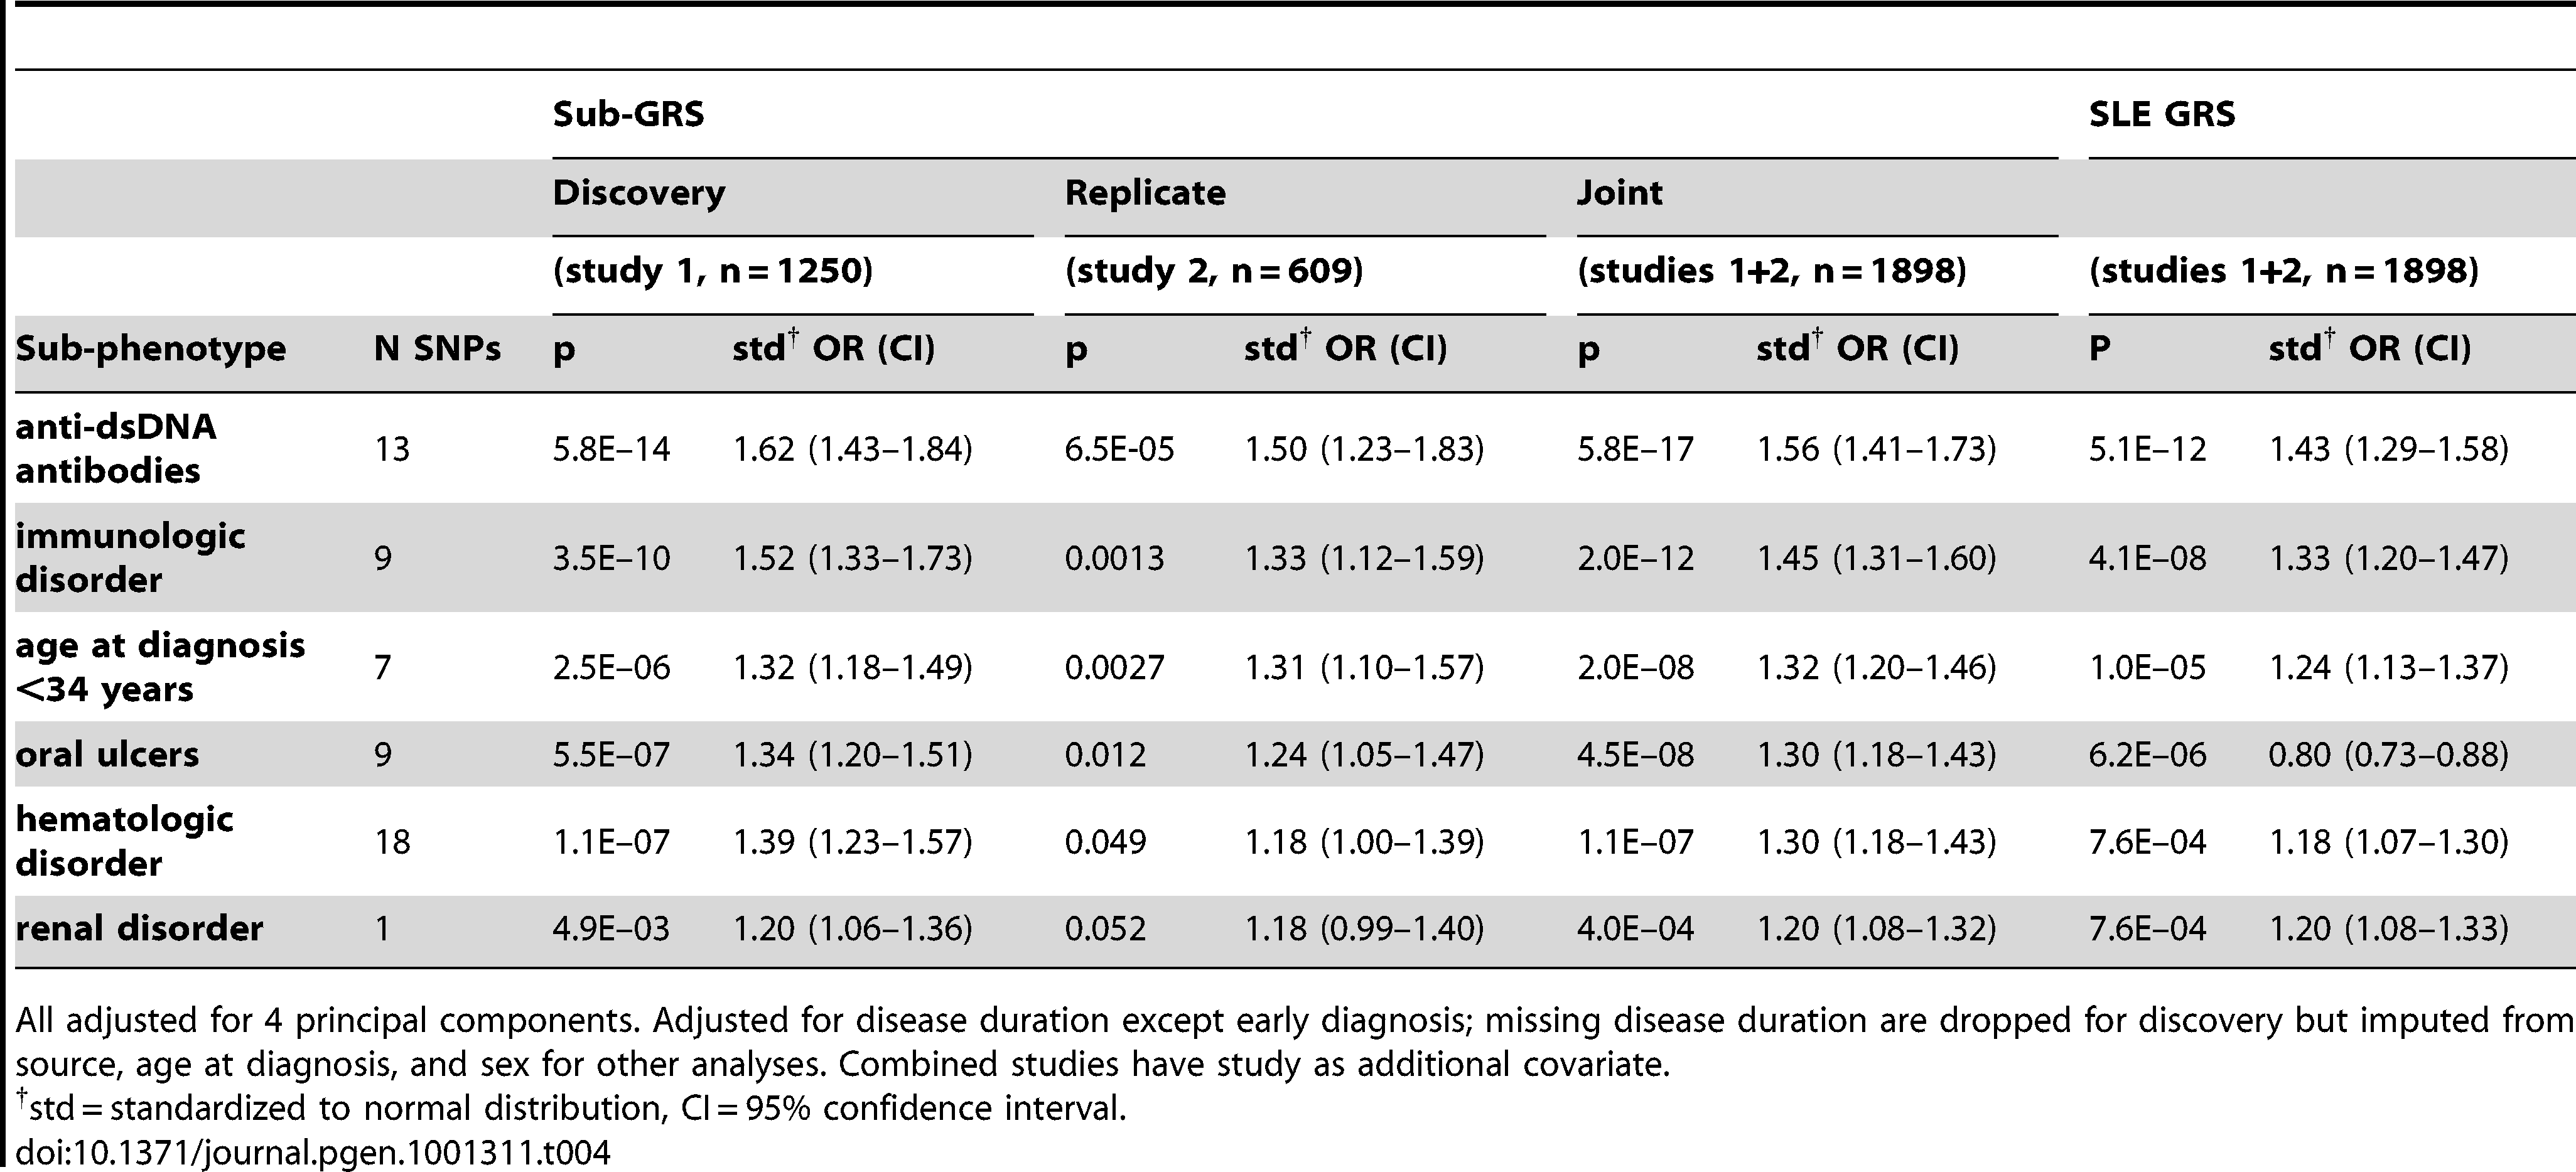 Logistic regression results for sub-GRS and SLE GRS, for subphenotypes with sub-GRS p<0.1 in replication set (study 2).